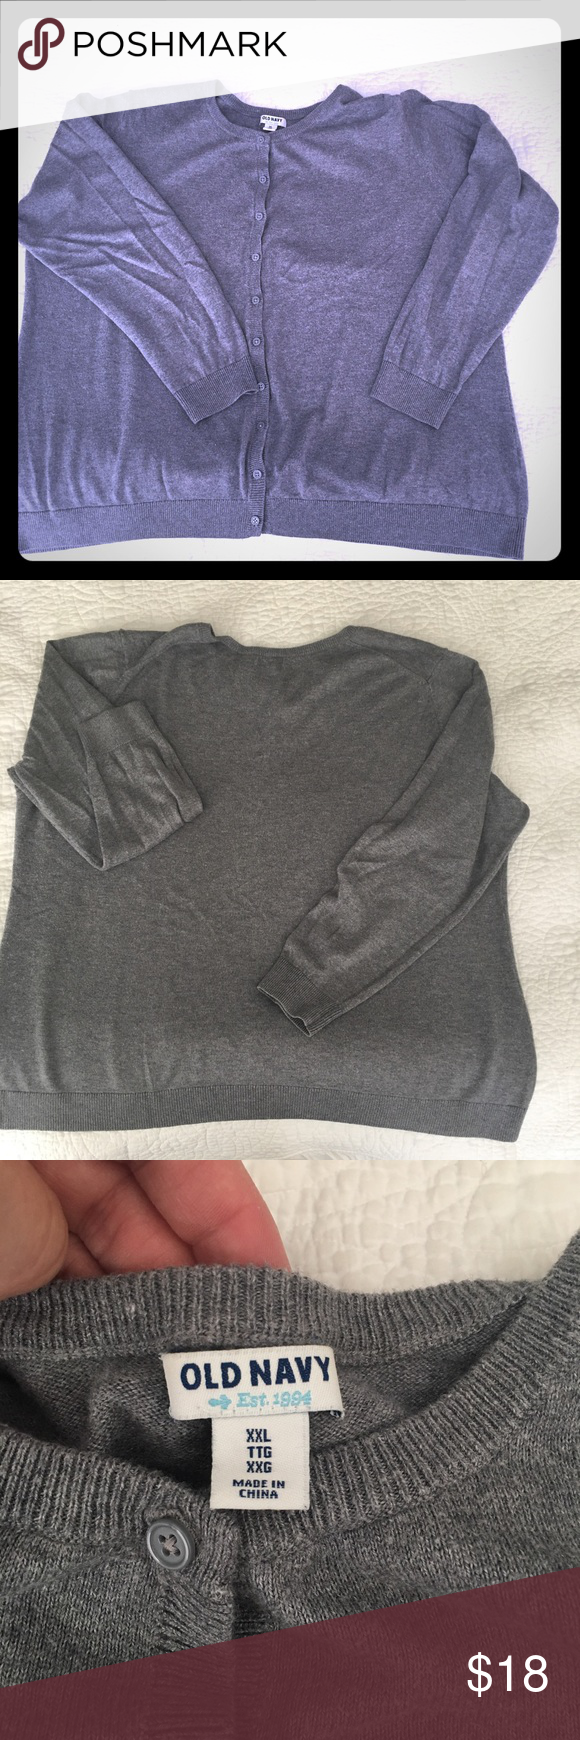 •Old Navy• Gray Cardigan This soft, gray-colored cardigan pairs well with jeans, skirts and dresses. Wear buttoned-up or open, and toss in your bag for later. Machine-washable, no damage. Smoke-free home. Old Navy Sweaters Cardigans